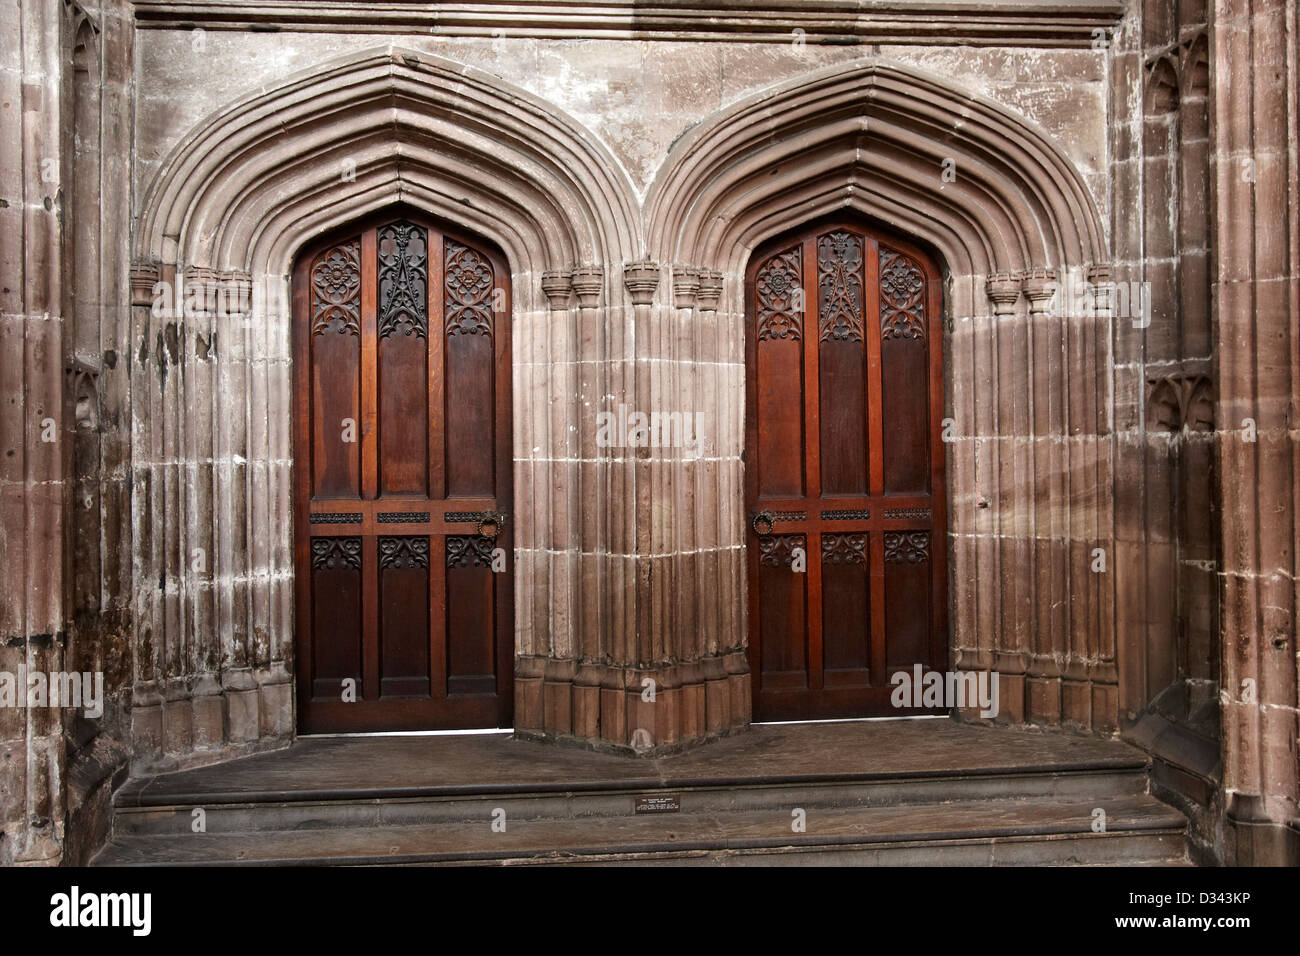 Pair of doors in Manchester Cathedral taken from inside the building - Stock Image